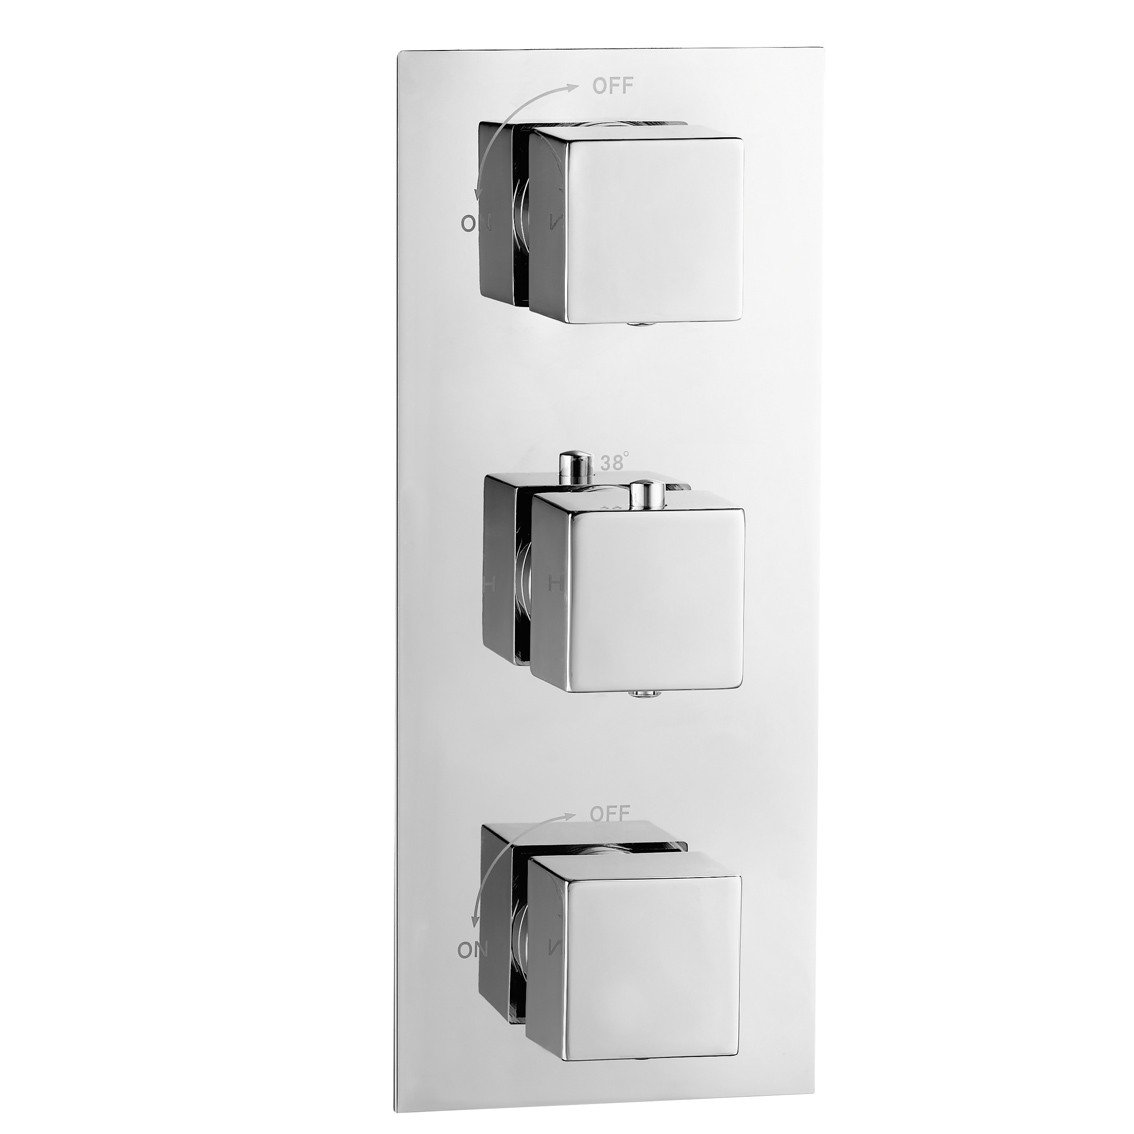 Modern Thermostatic Mixer Shower Valve 2 Way Diverter Square Chrome Bathroom  iBath       Customer reviews and more information